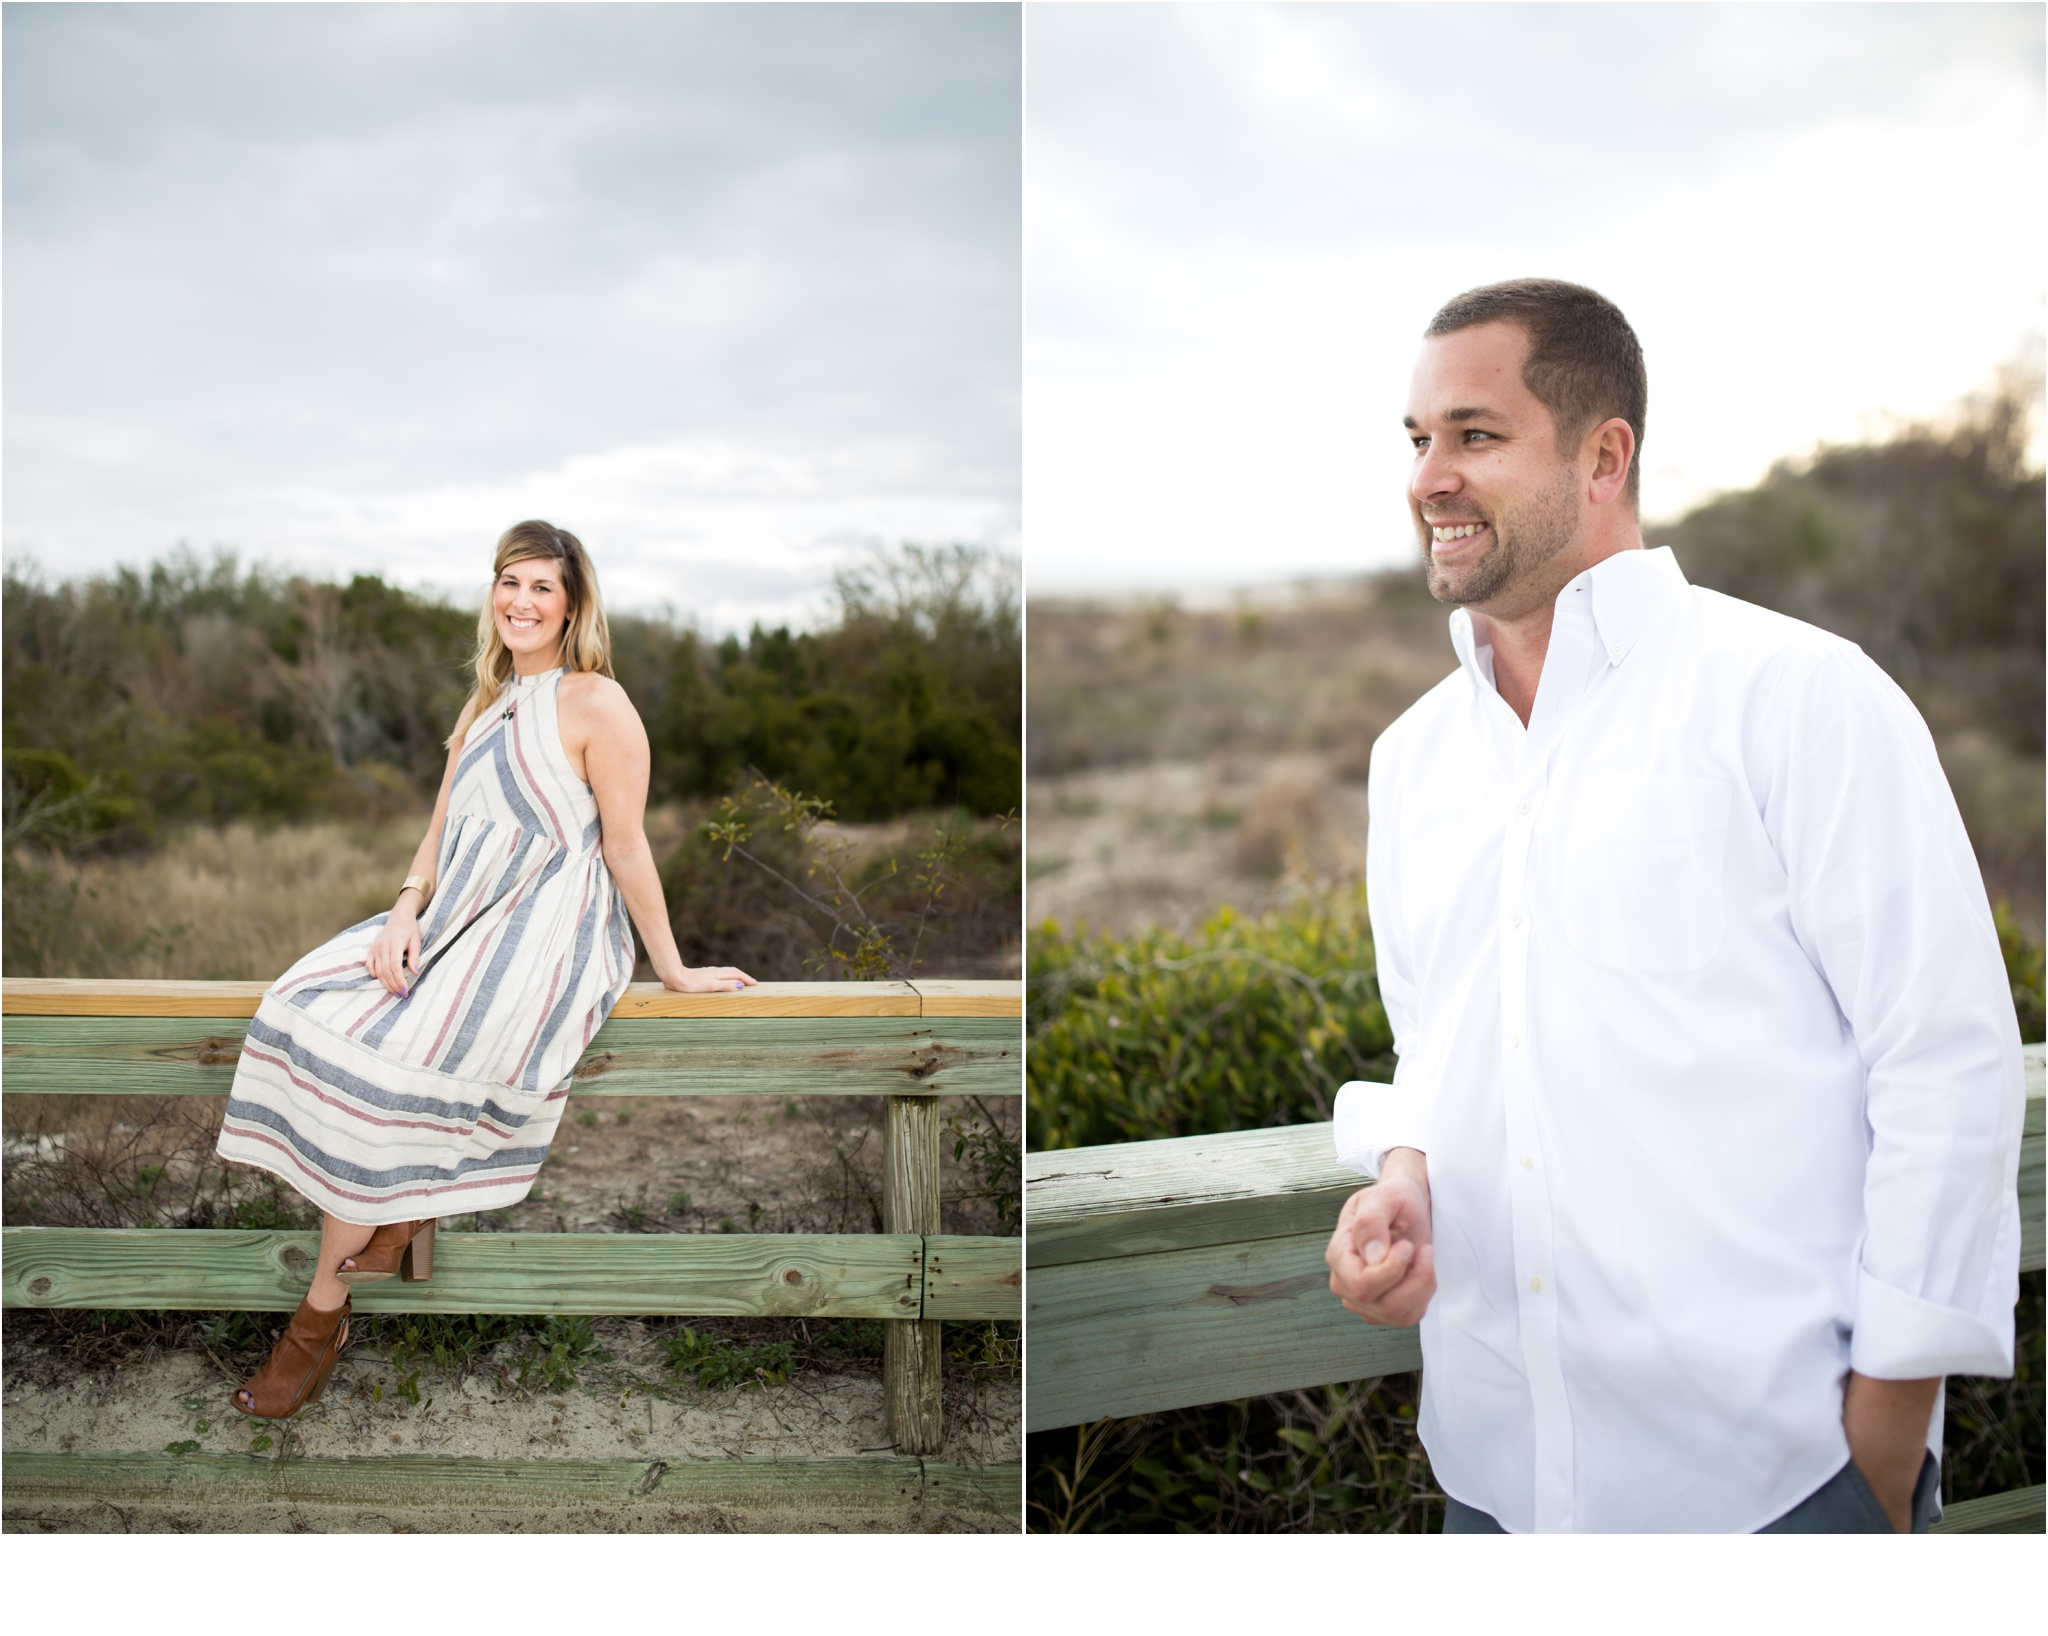 Rainey_Gregg_Photography_St._Simons_Island_Georgia_California_Wedding_Portrait_Photography_0561.jpg